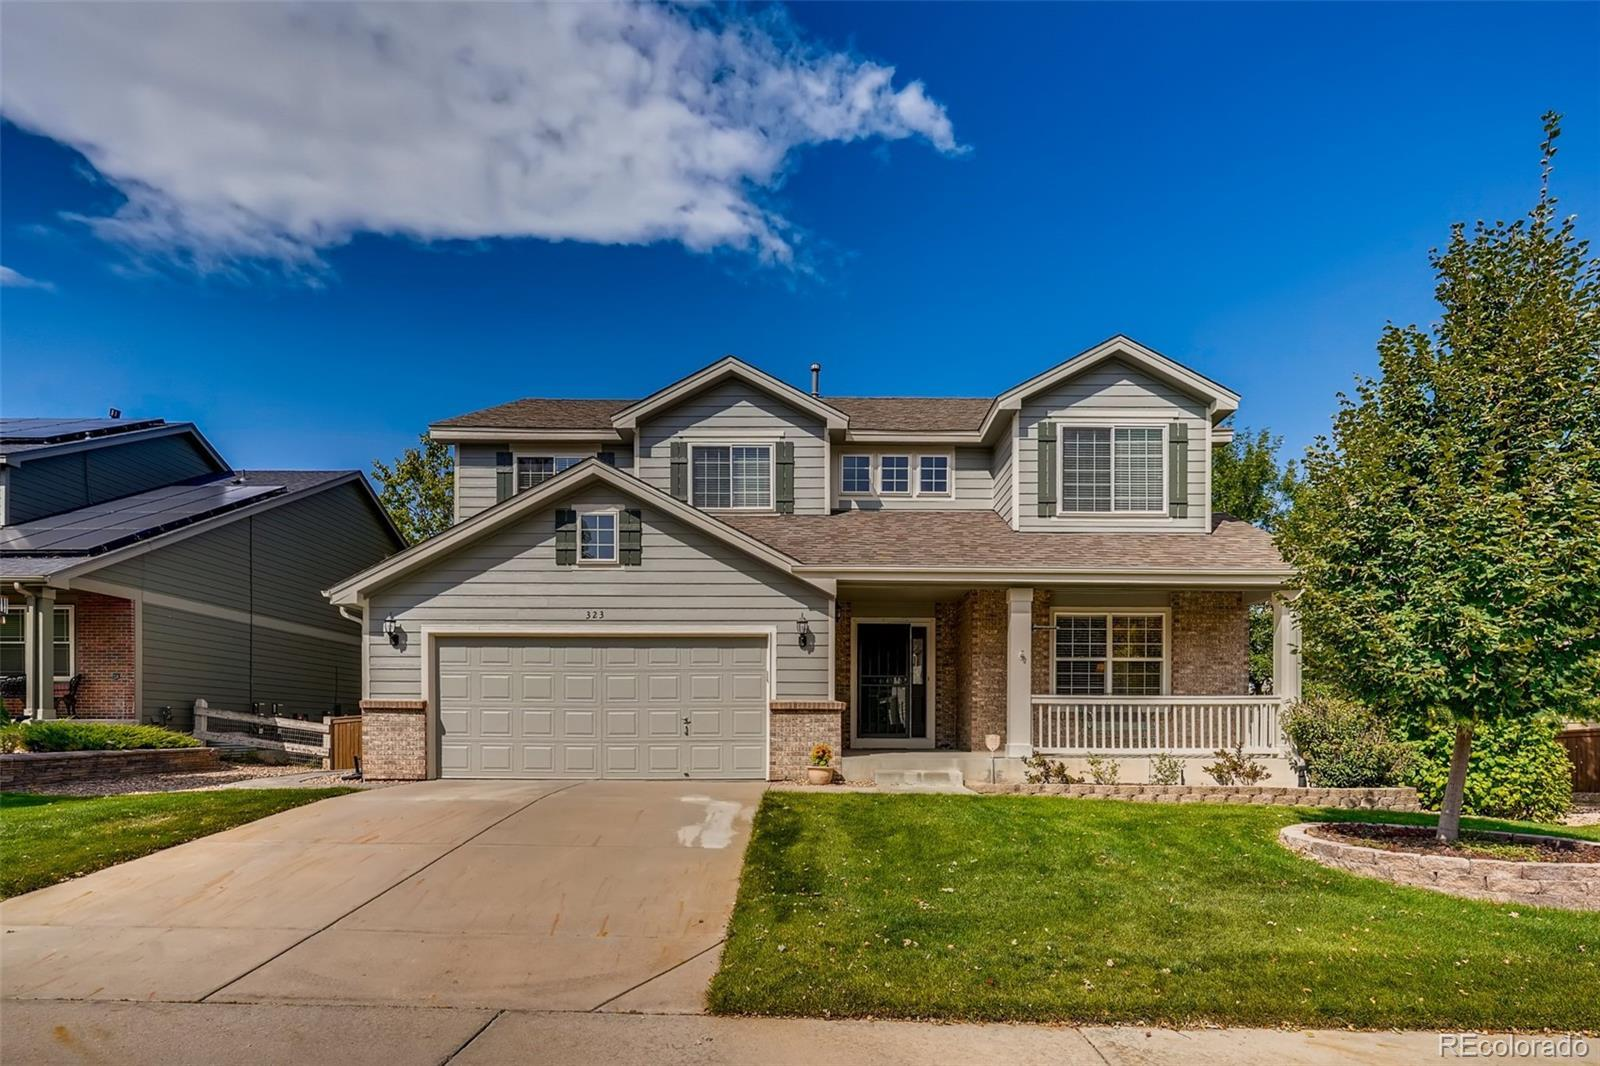 323 Rose Finch Circle, Highlands Ranch, CO 80129 - #: 5643345